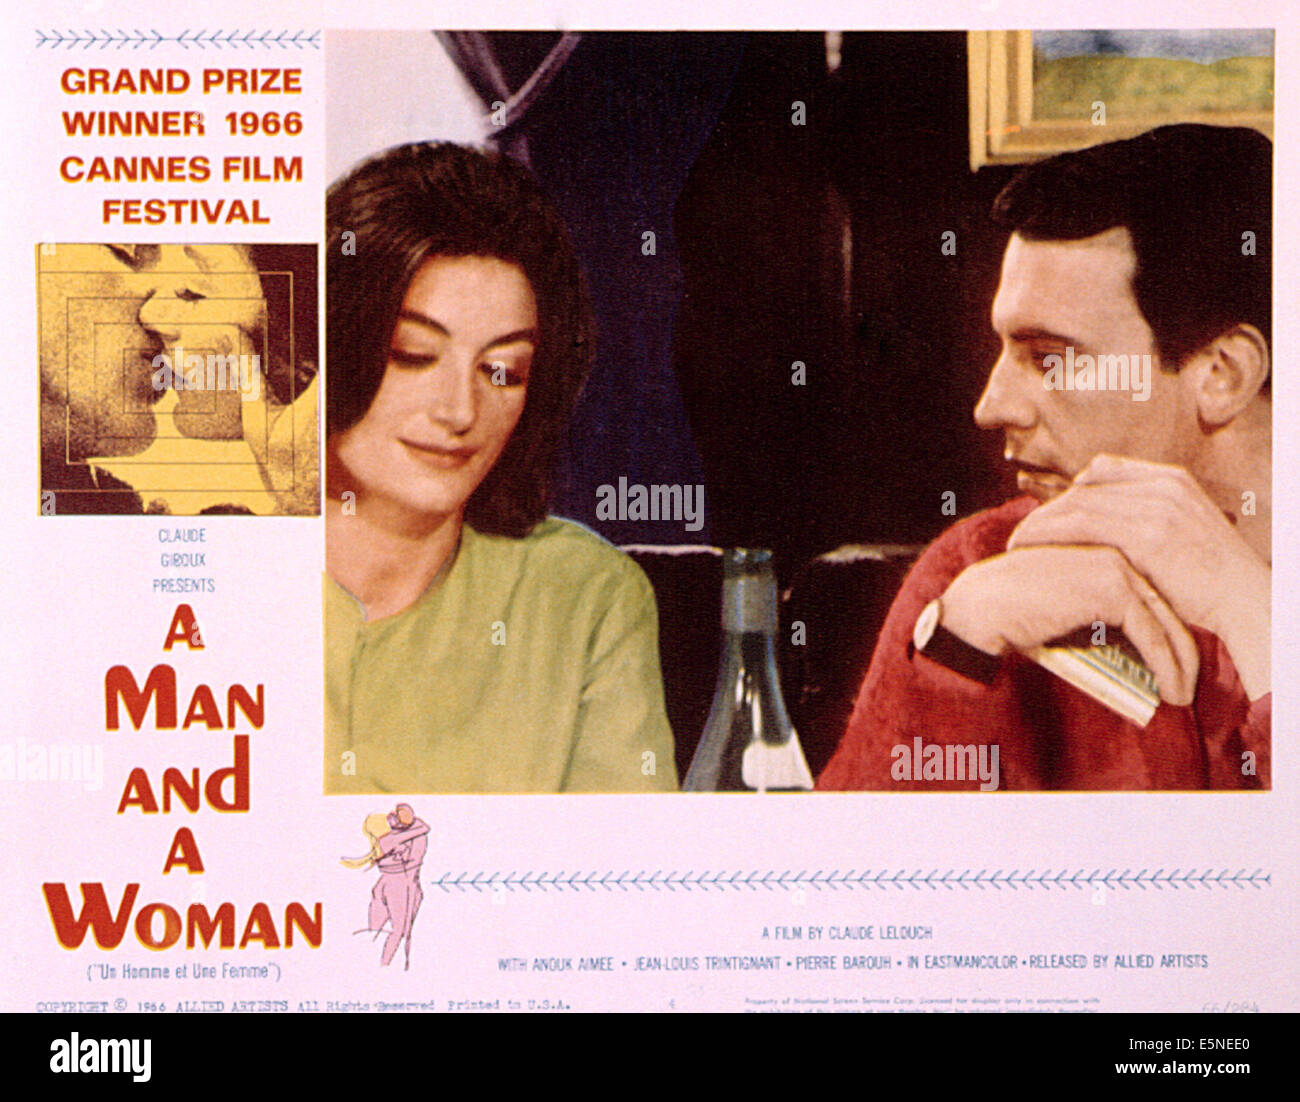 a-man-and-a-woman-anouk-aimee-jean-louis-trintigant-1966-E5NEE0.jpg